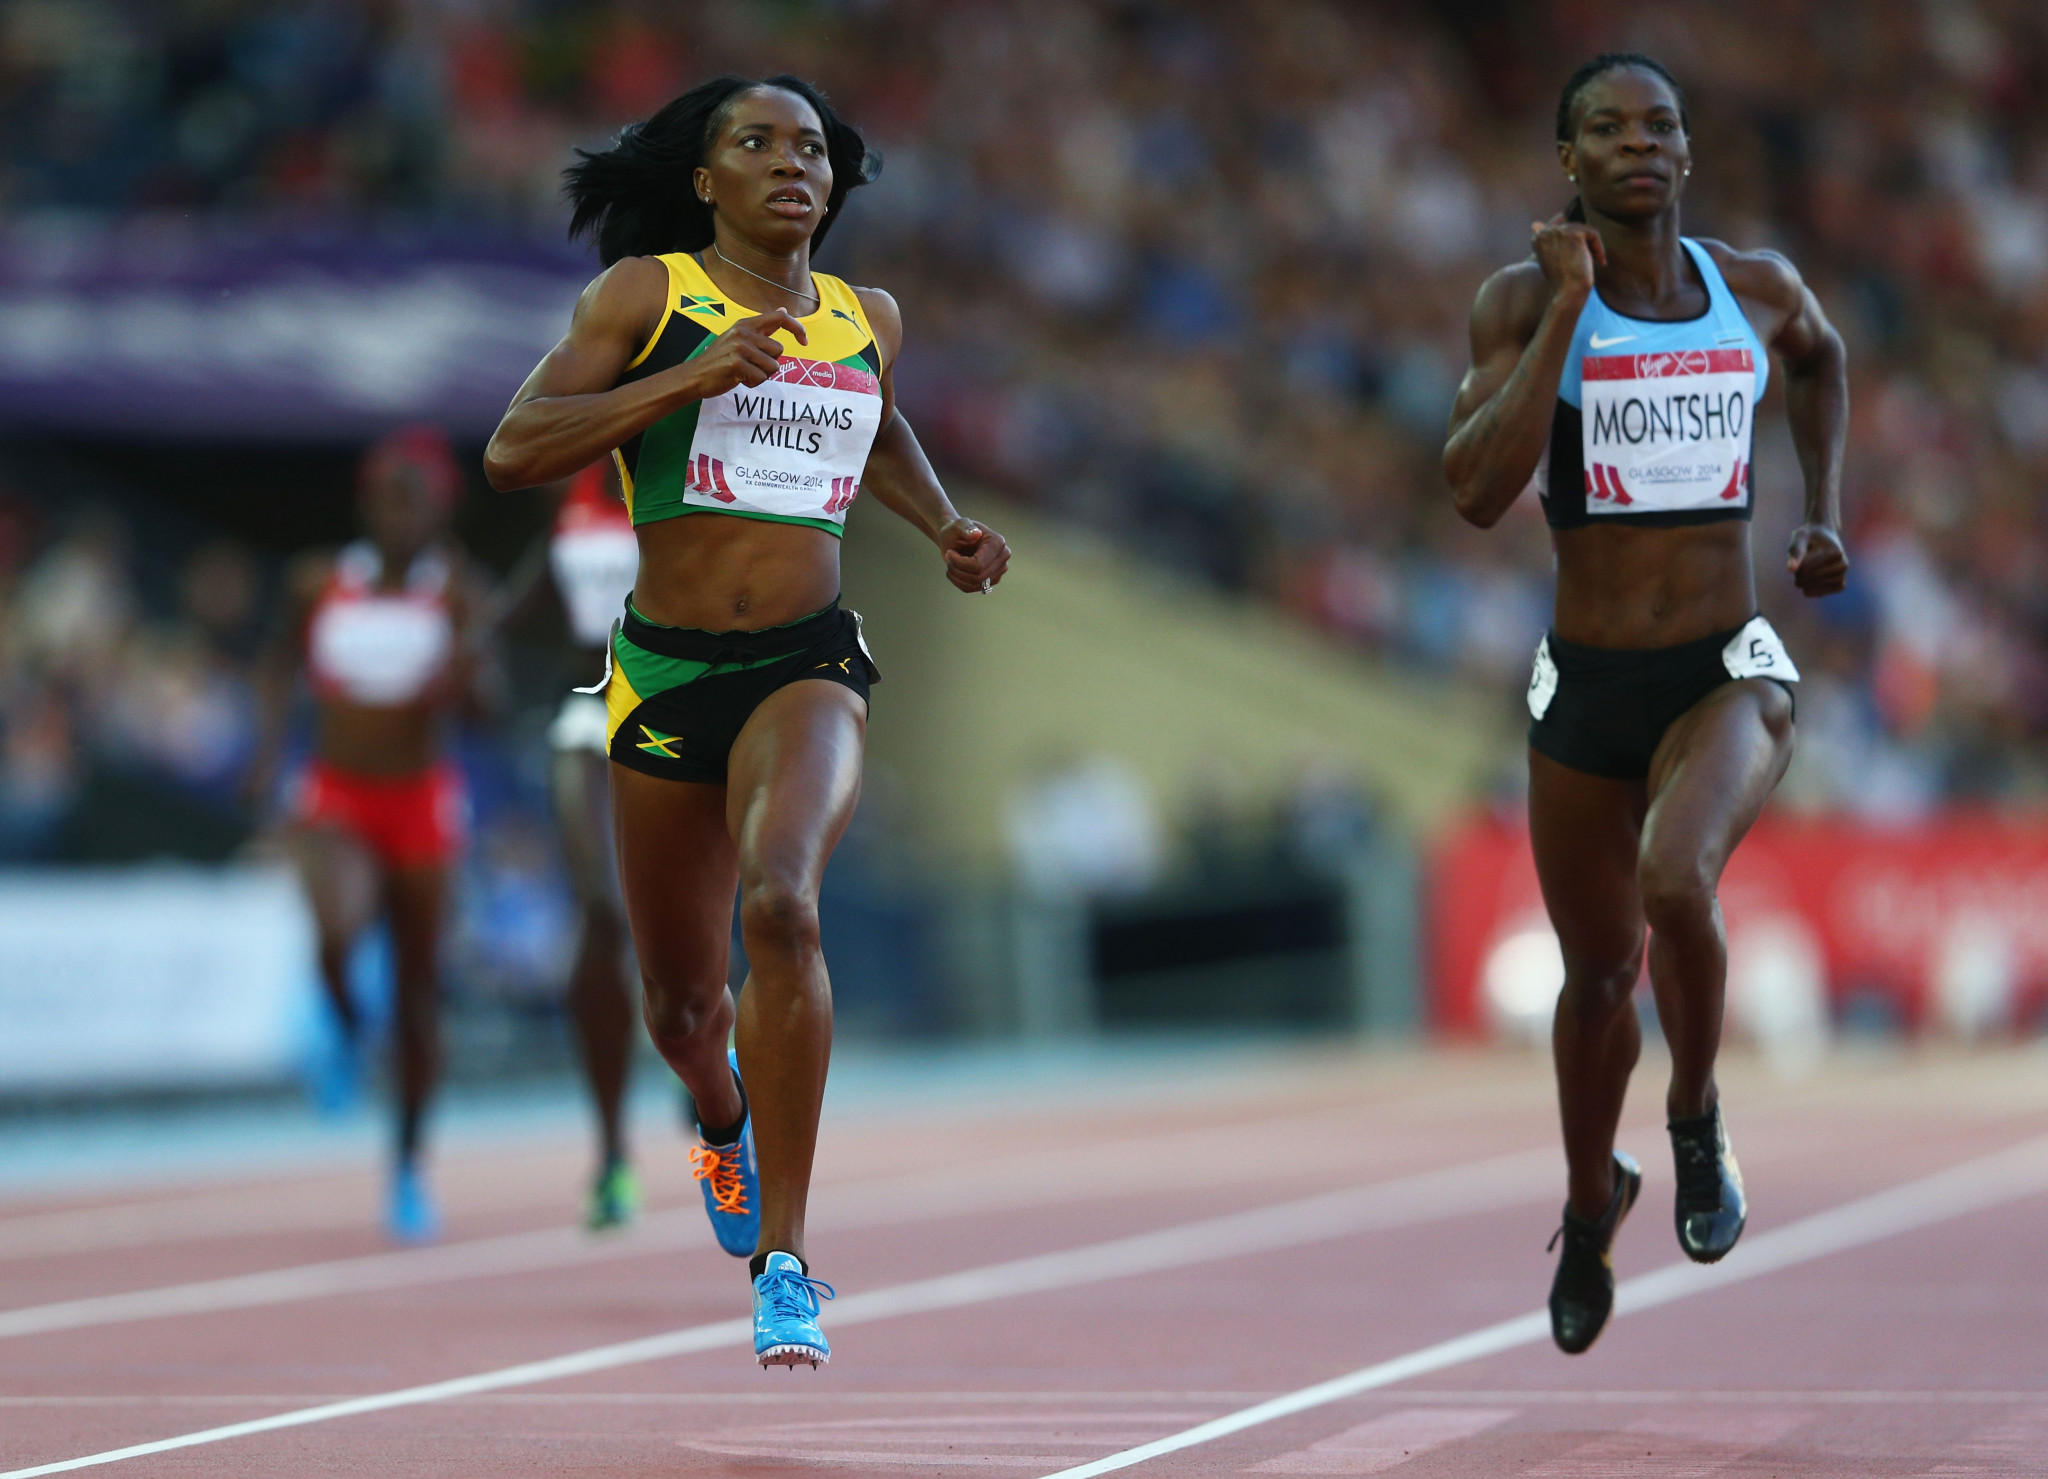 Botswana's Amantle Montsho, right, was one of two competitors to test positive for banned drugs at Glasgow 2014 ©Getty Images